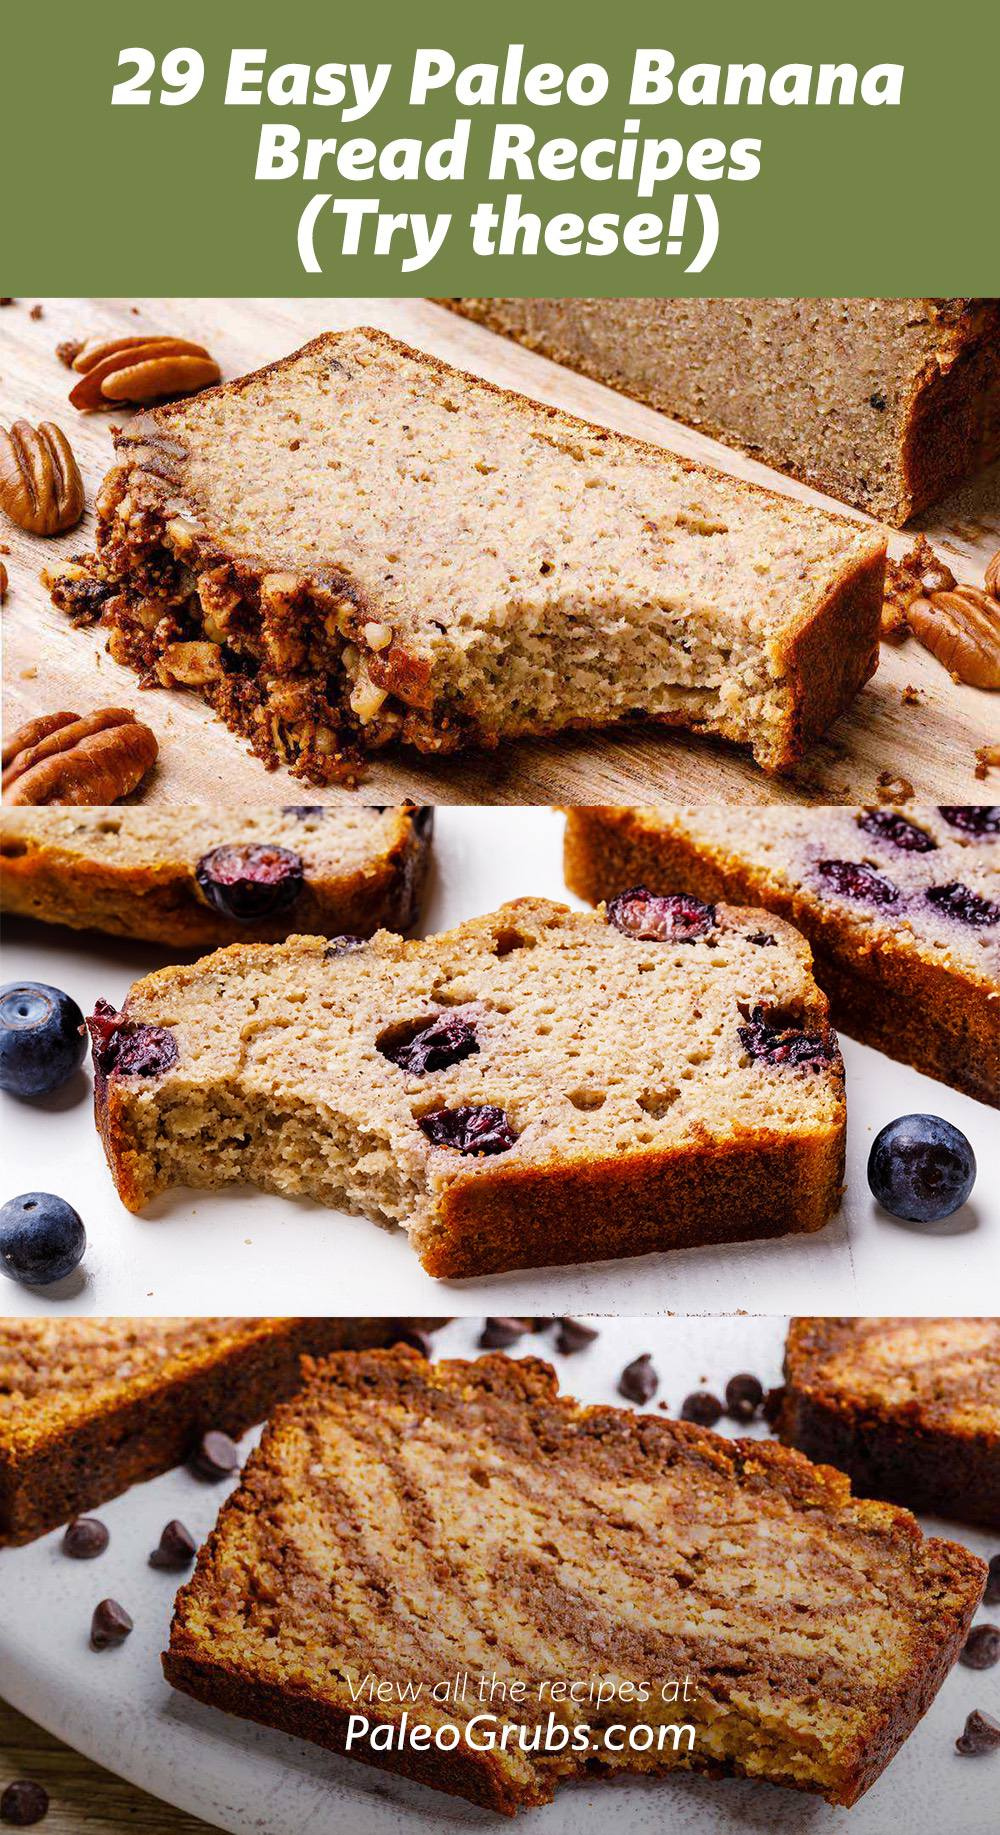 29 Easy Paleo Banana Bread Recipes (Try these!)